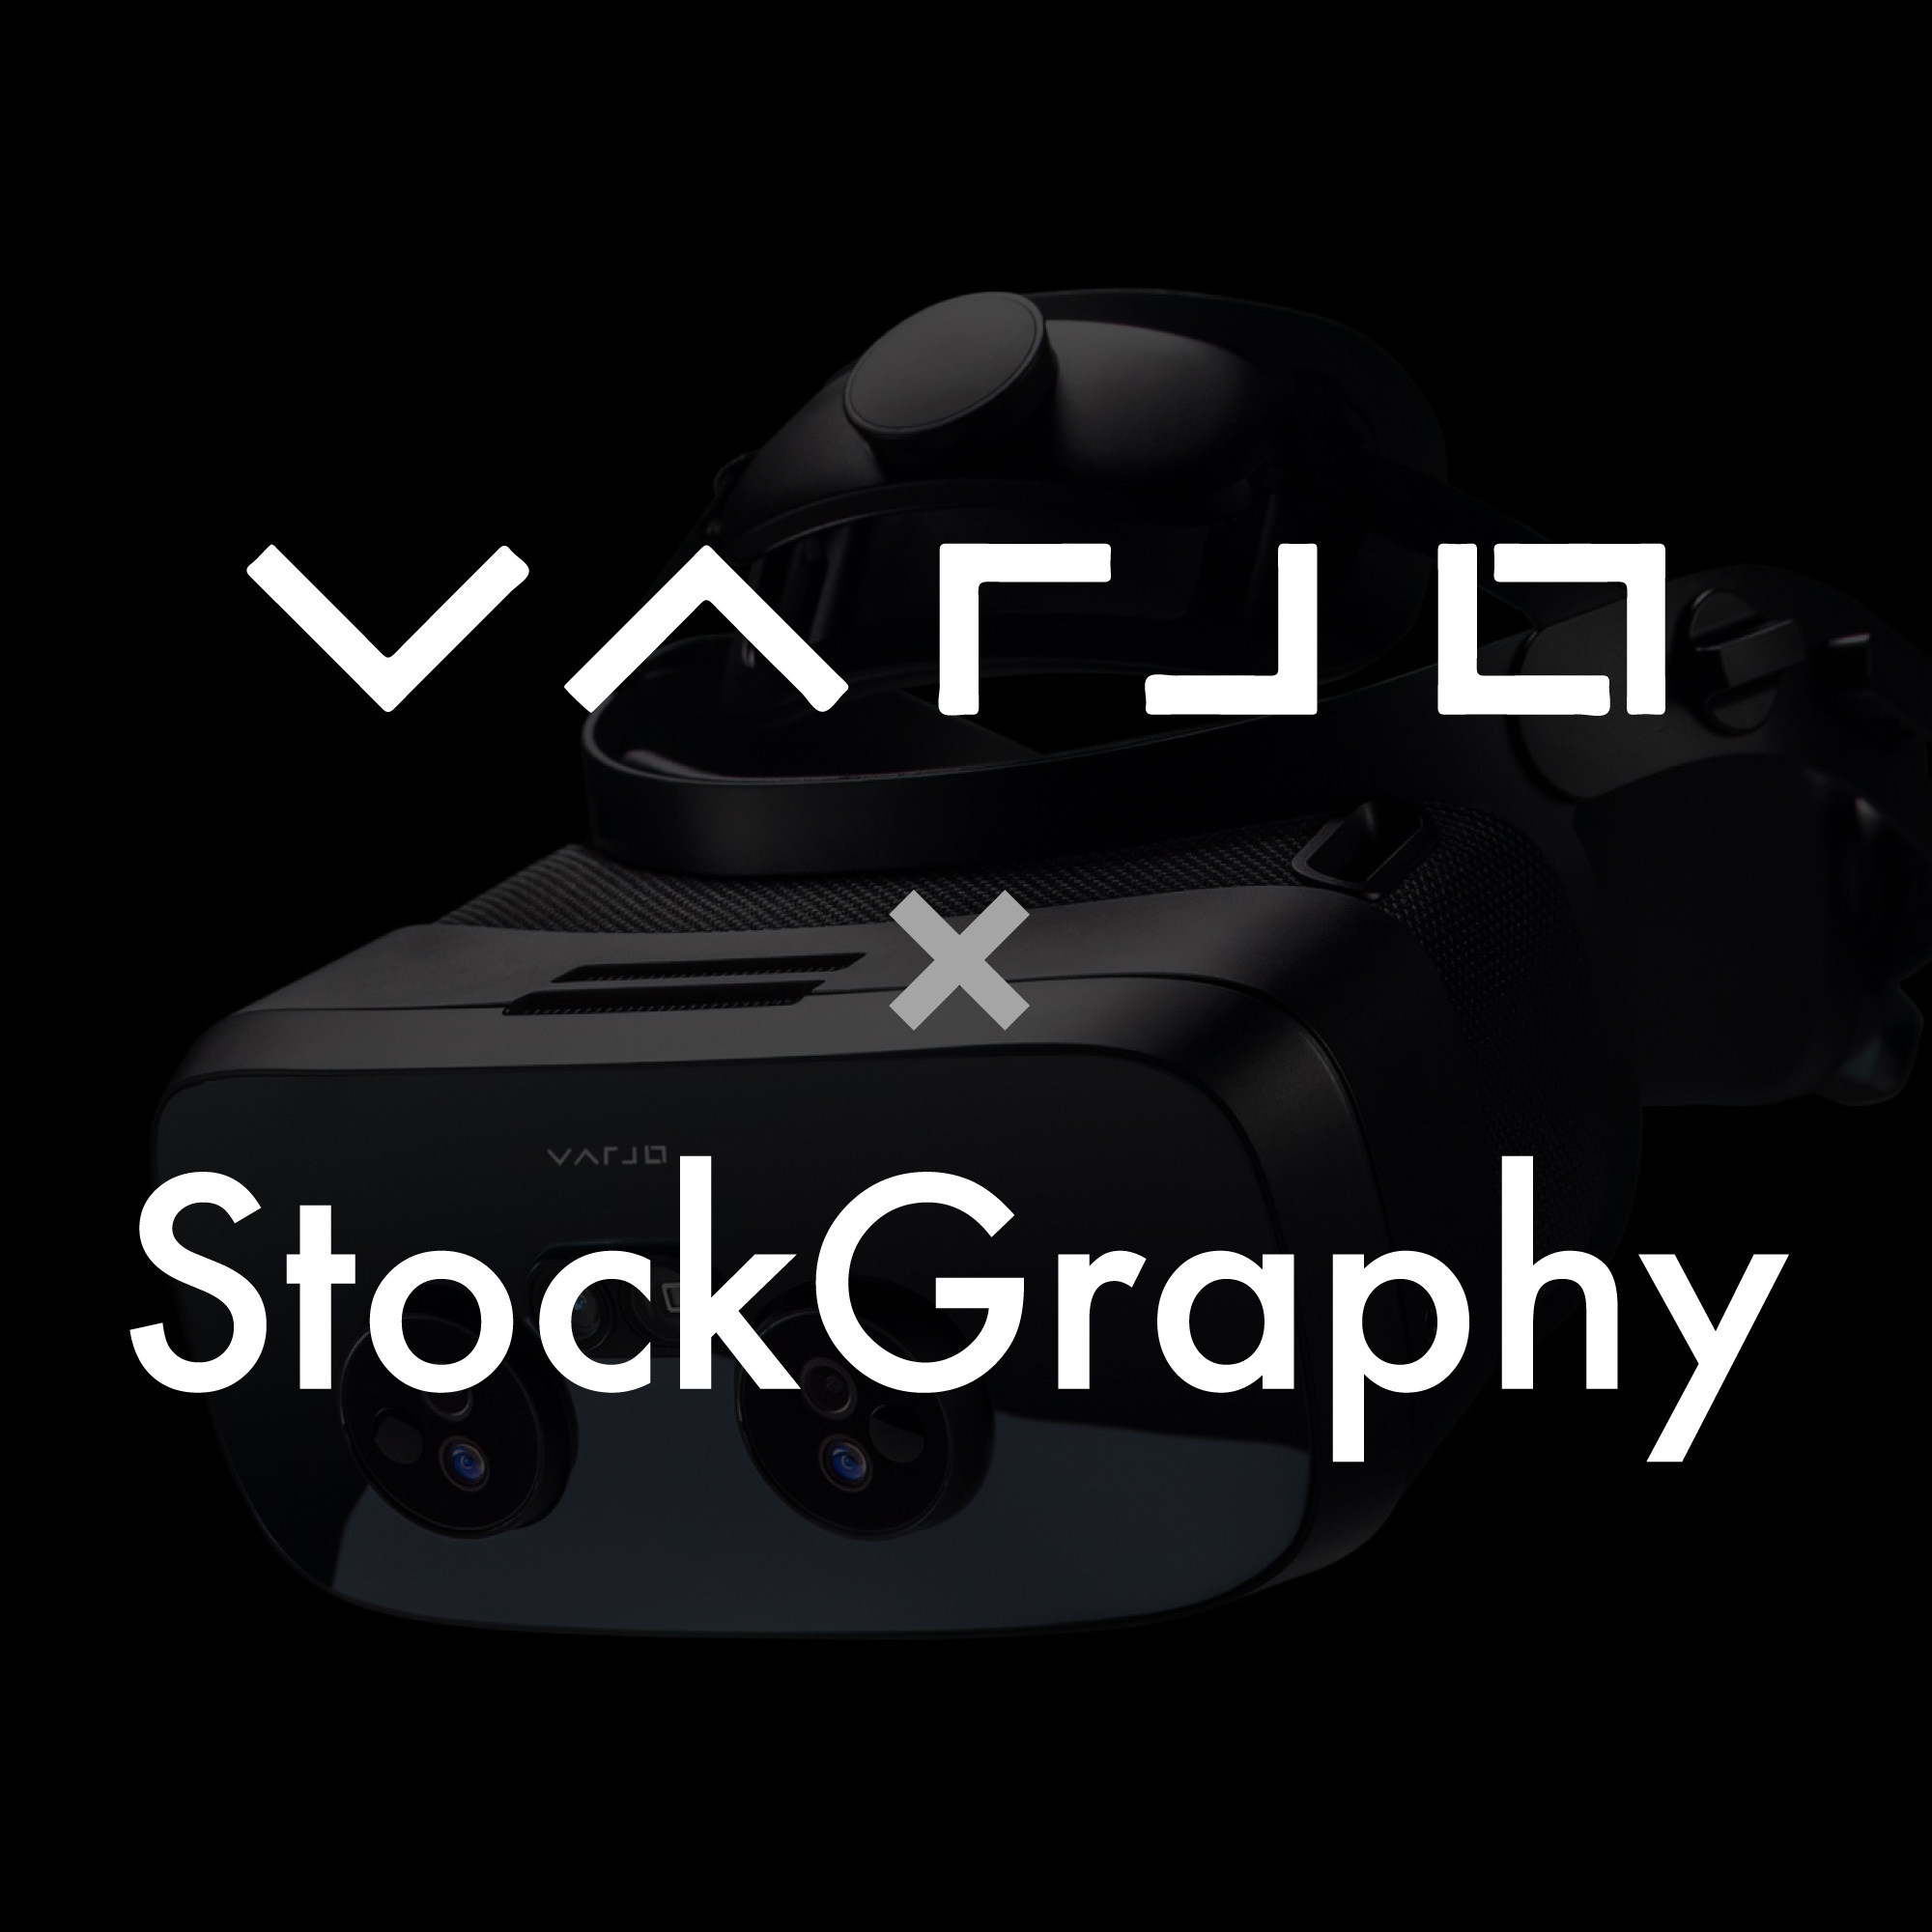 StockGraphy Partners With Varjo for Social Implementation of 3D Digital Transformation